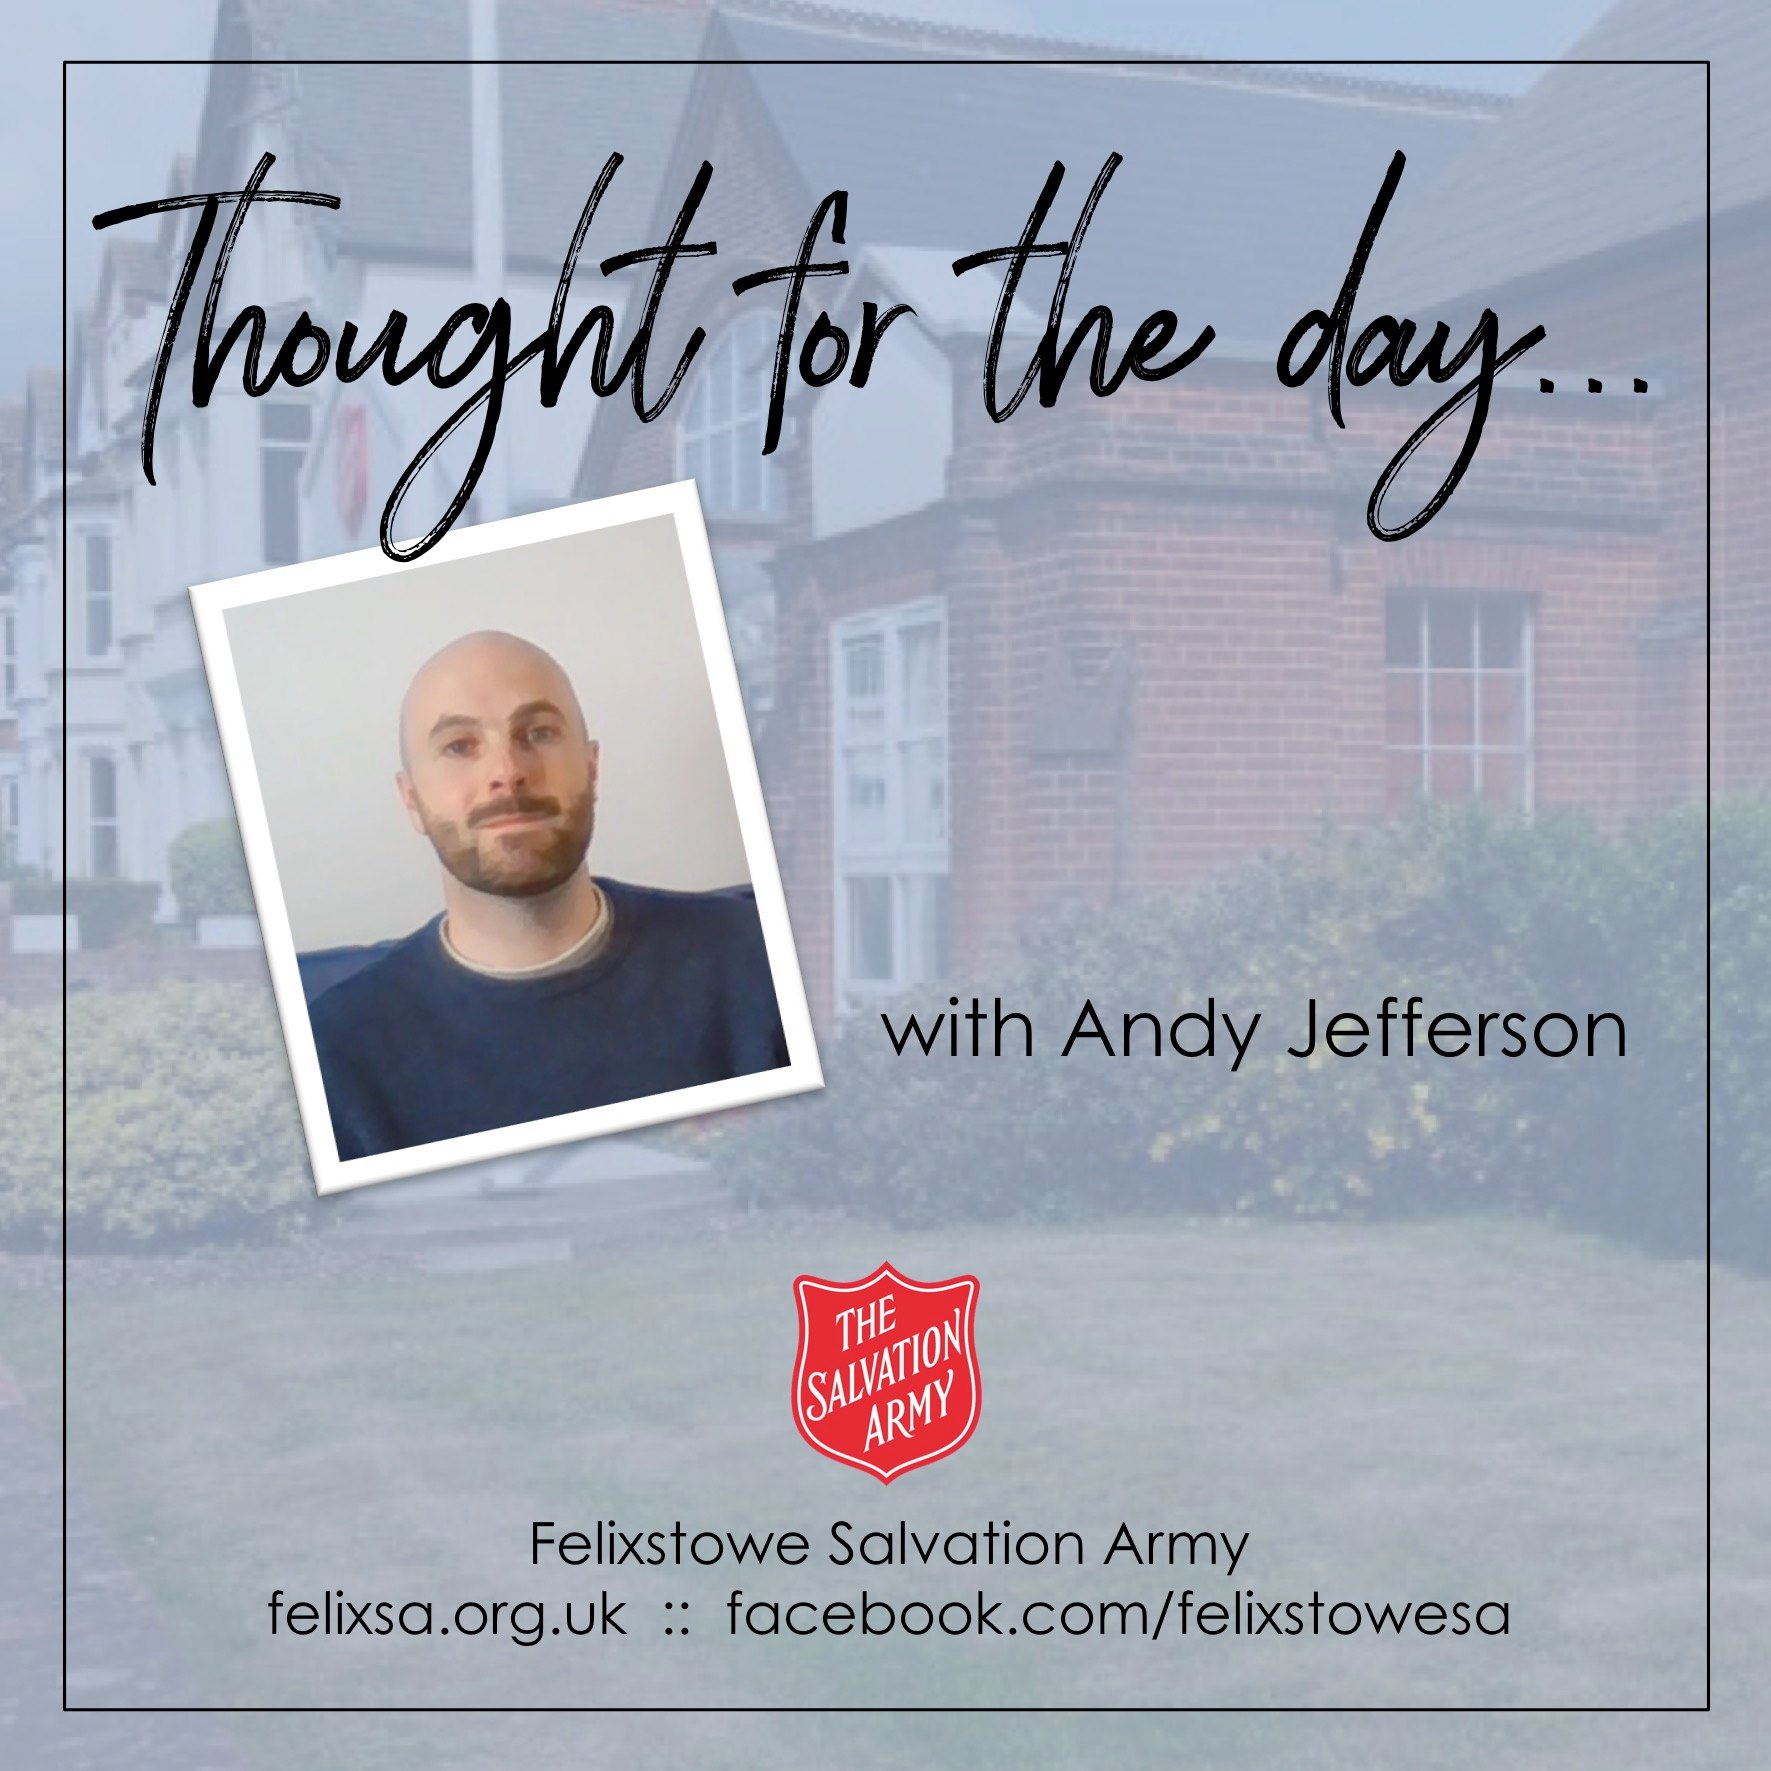 Thought for the Day with Andy Jefferson